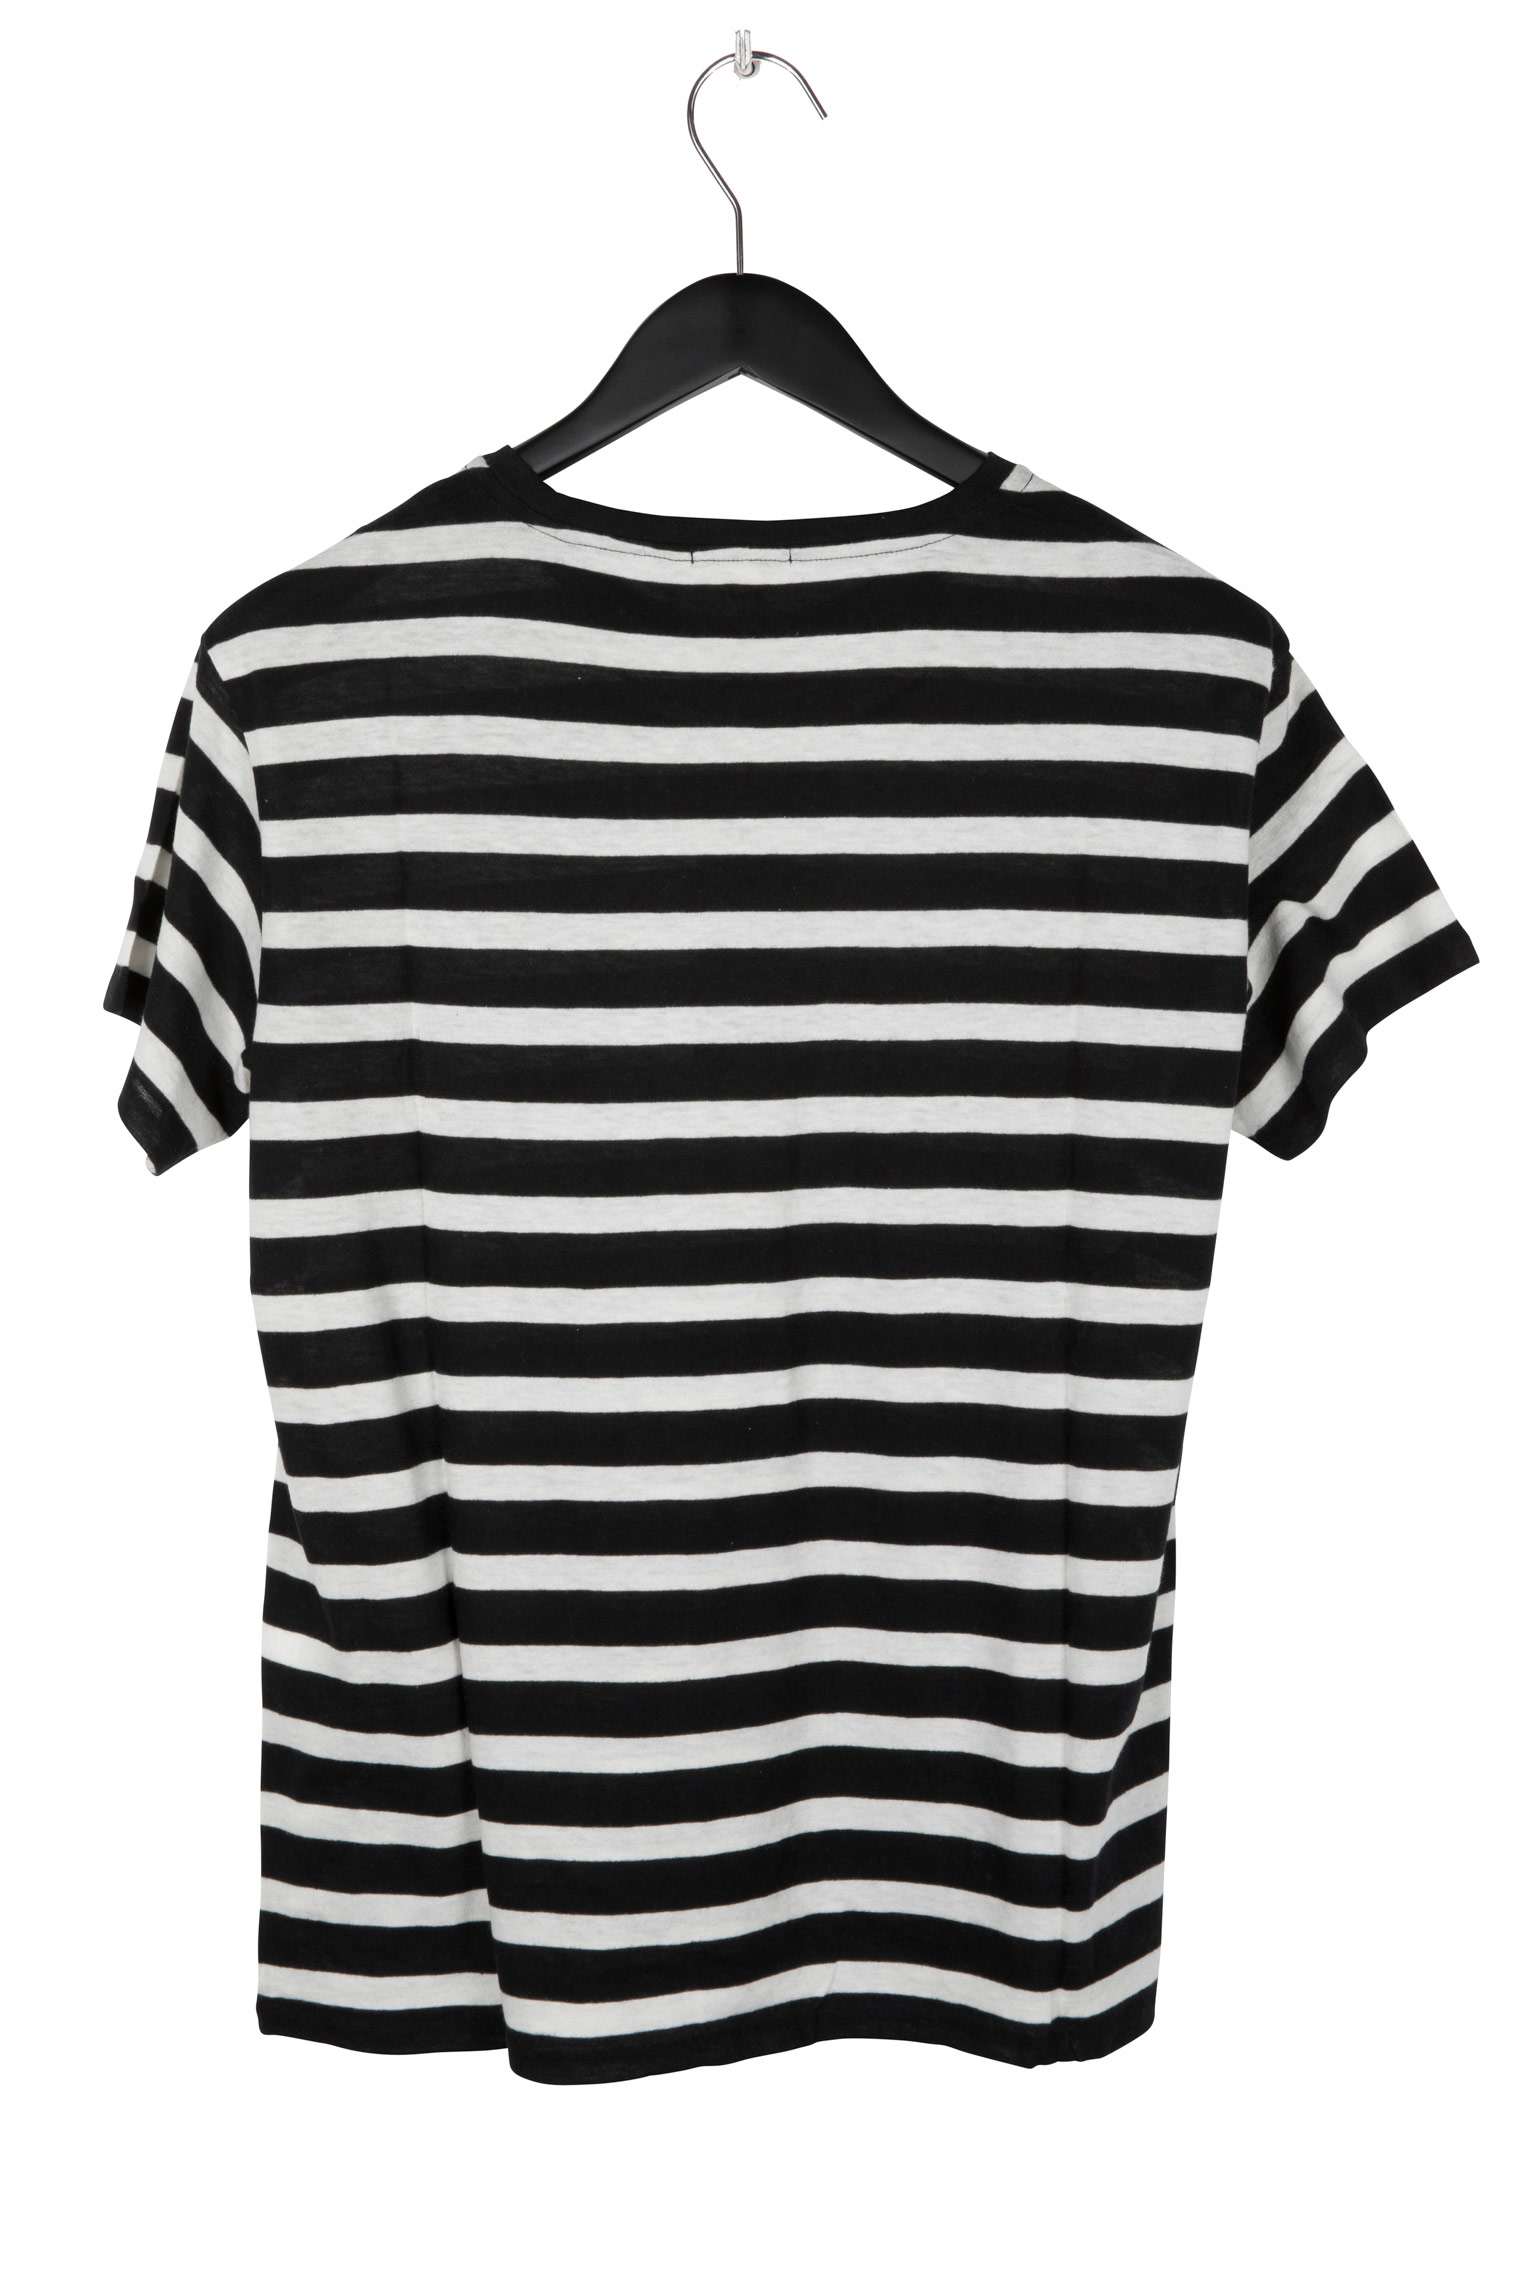 R13 Striped Boy T Shirt Endstation Gallery